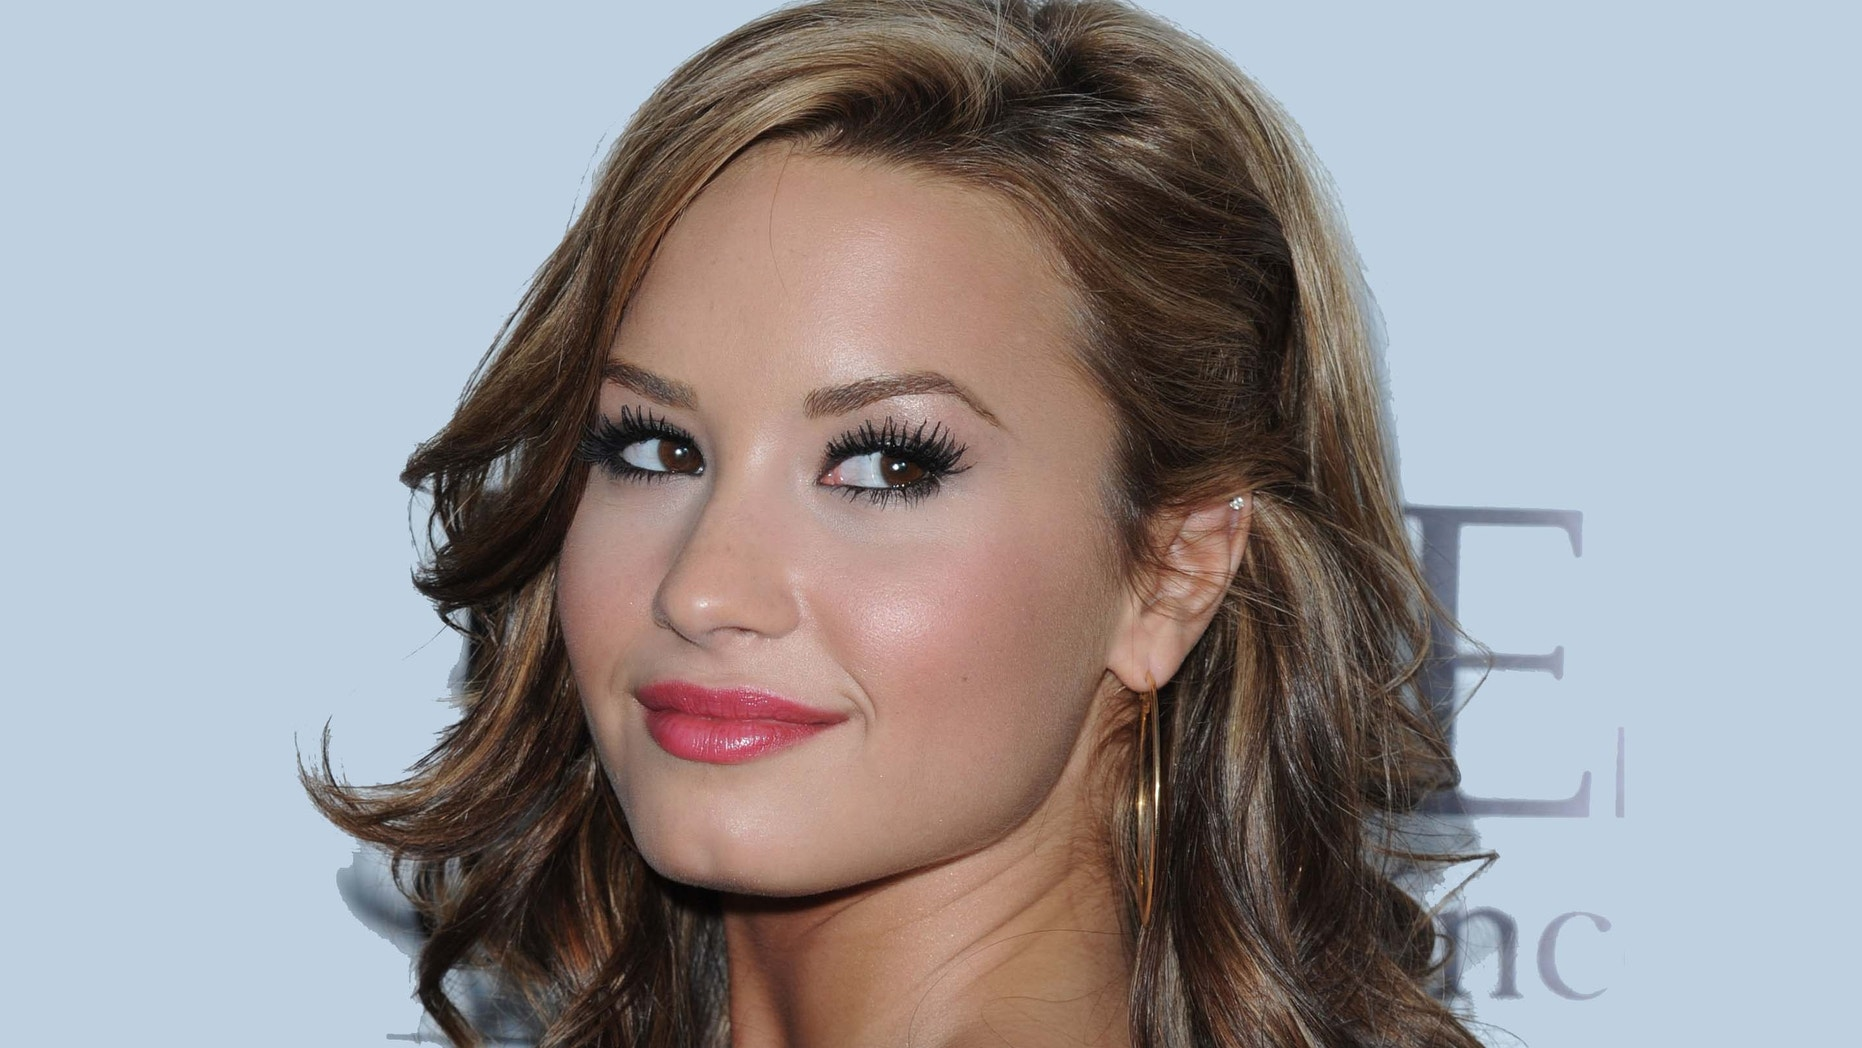 ©AXELLE/BAUER-GRIFFIN.COM PADRES Contra El Cancer's 25th Anniversary Gala. The Hollywood Palladium, Hollywood, CA. September 23, 2010. Job: 100923A1. www.bauergriffin.com www.bauergriffinonline.com  Pictured: Demi Lovato.